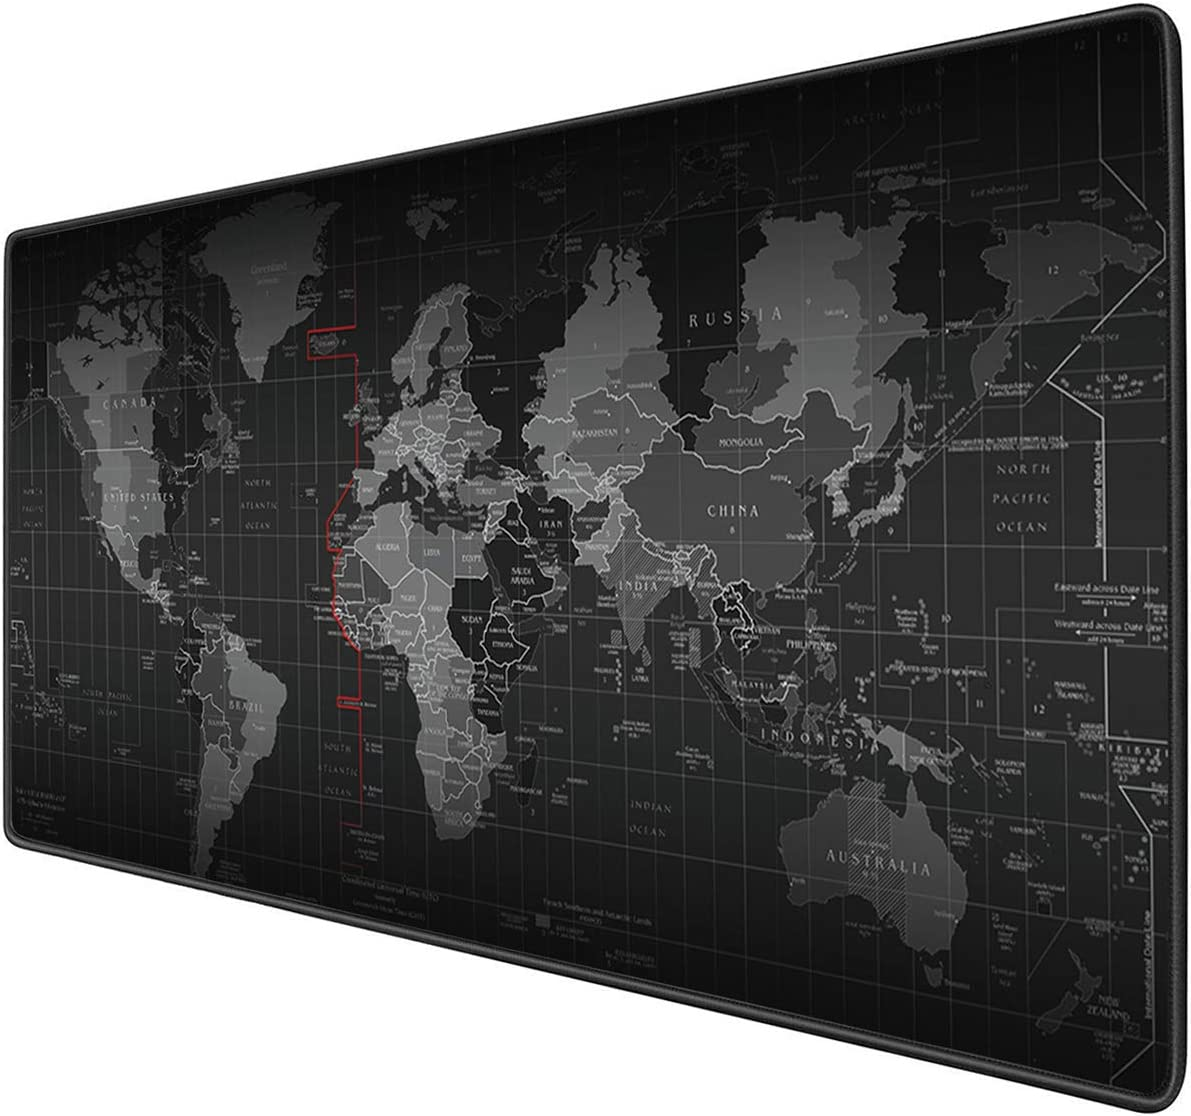 Benvo Extended Mouse Pad Large Gaming Mouse Pad- 35.4x15.7x0.12 inch Computer Keyboard Mouse Mat Non-Slip Mousepad Rubber Base and Stitched Edges for Game Players, Office, Study, World Map Pattern